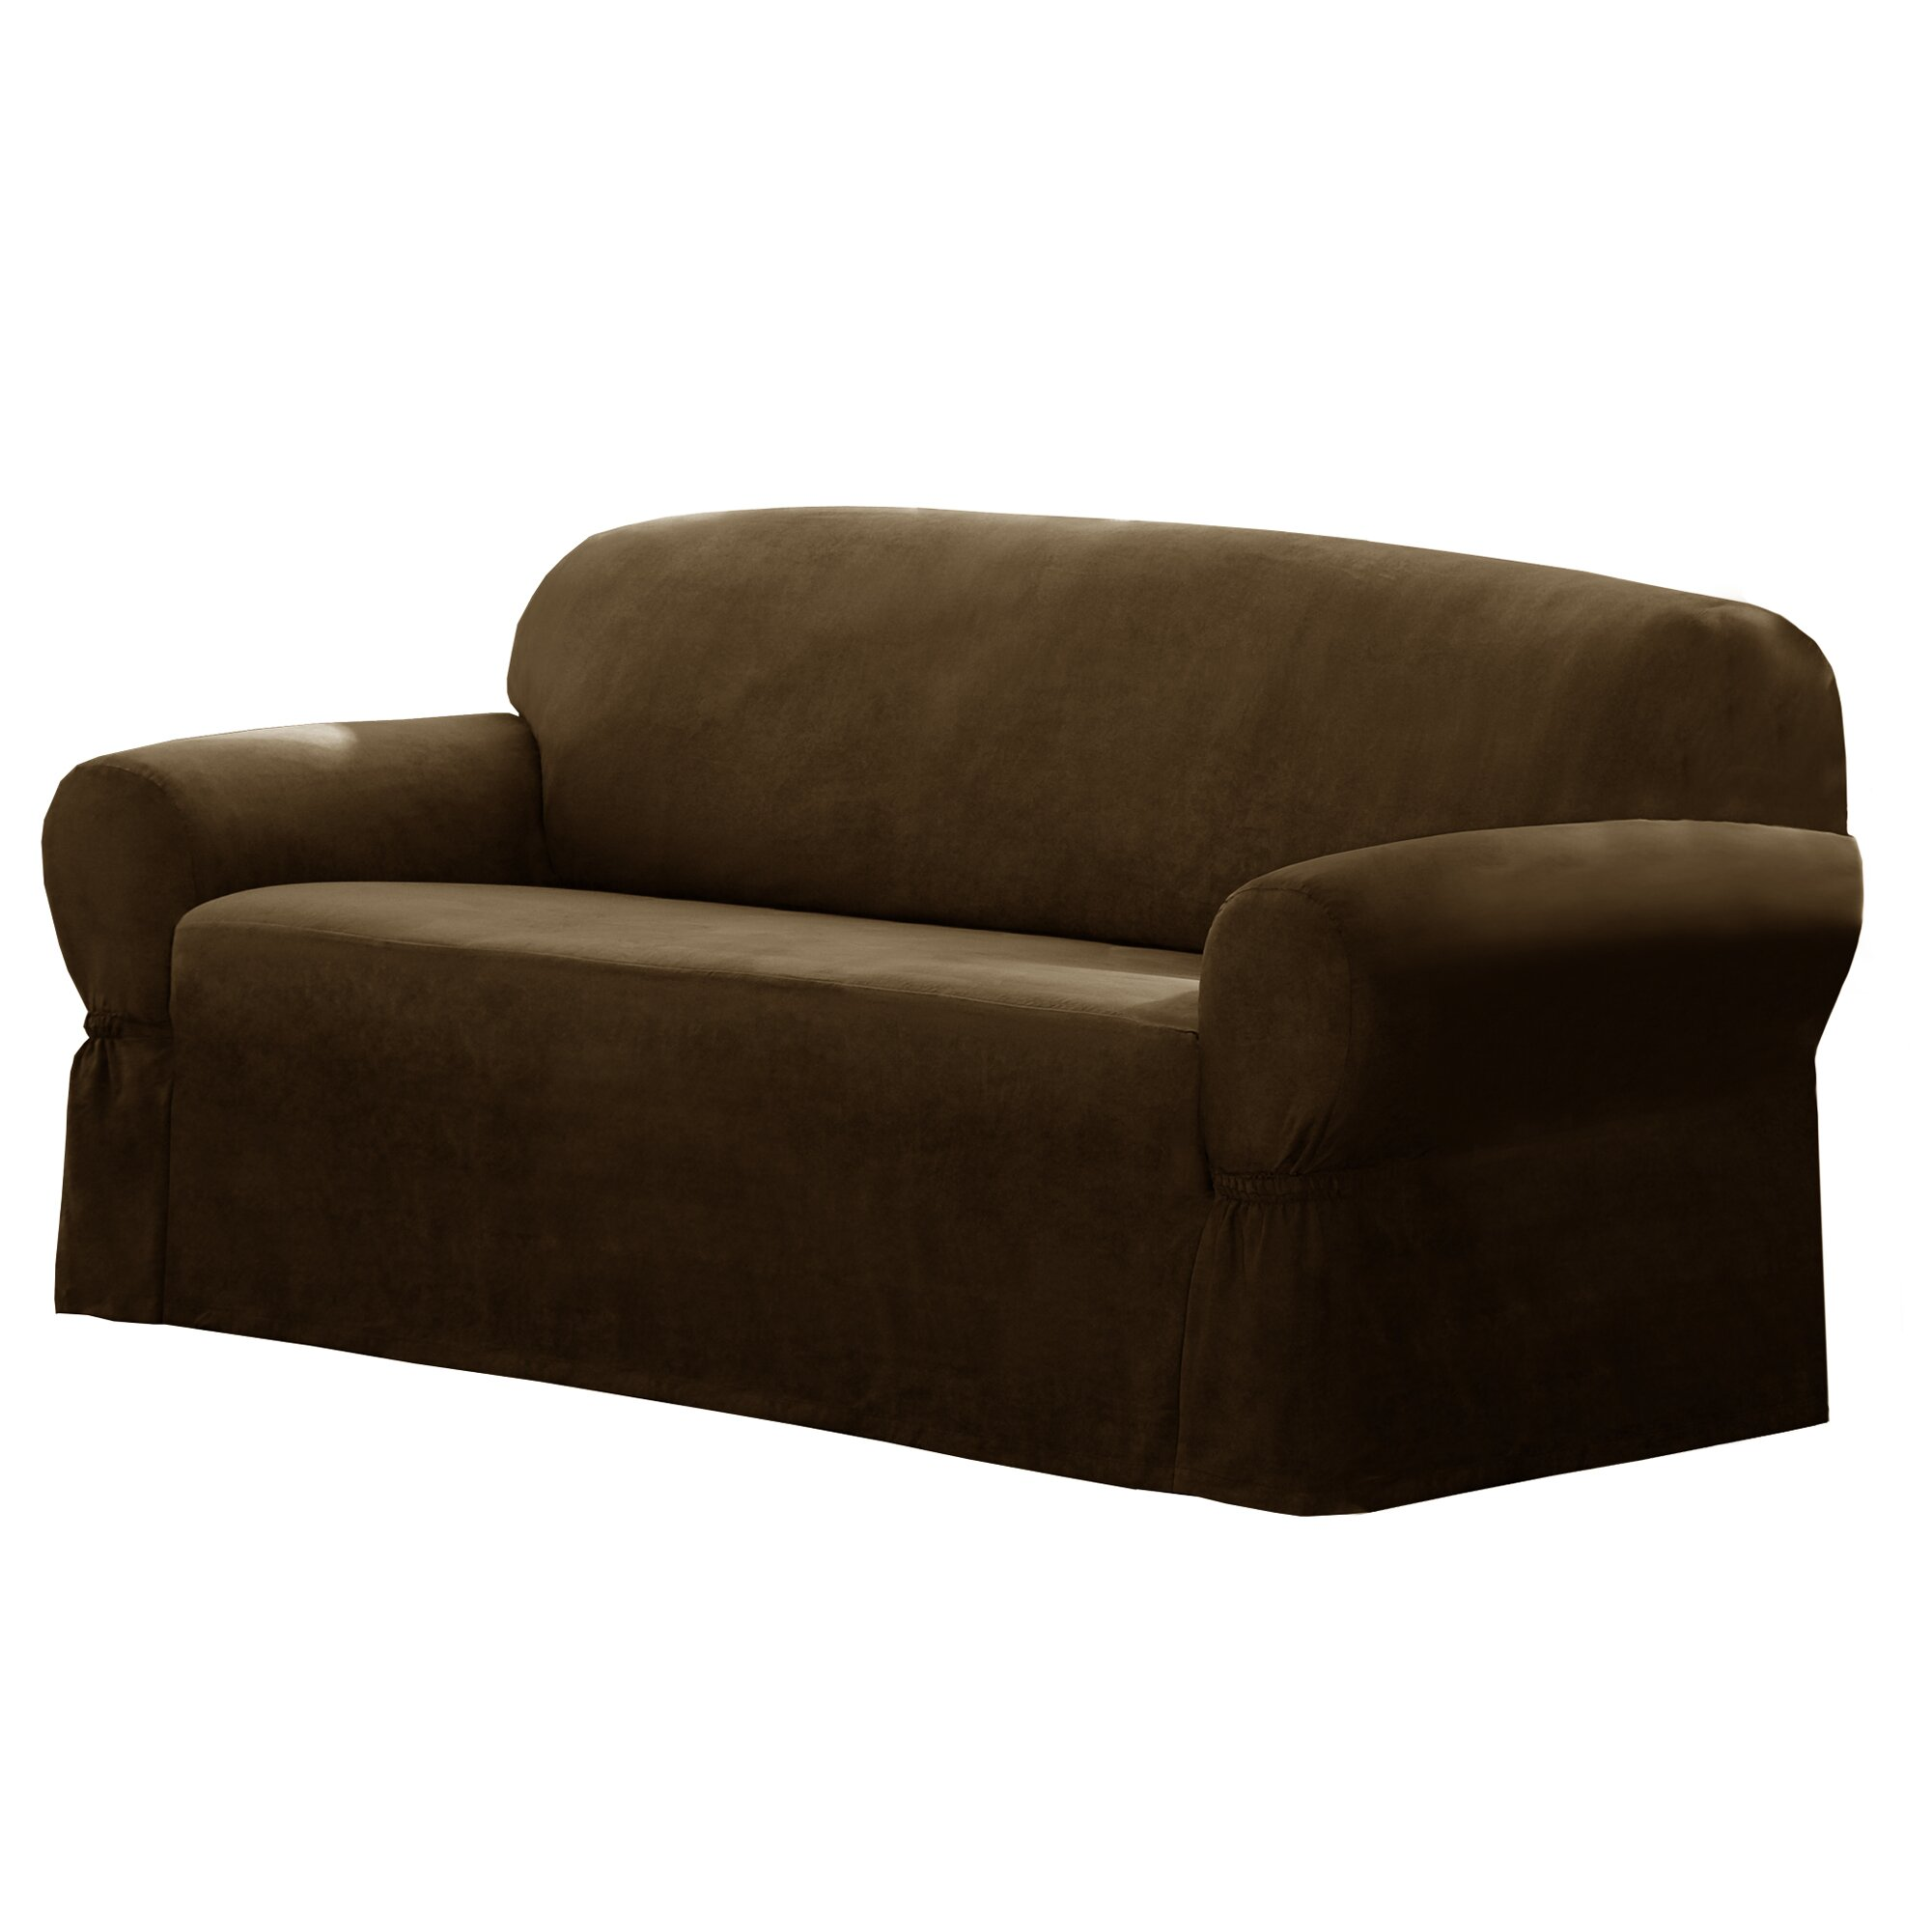 Maytex T Cushion Loveseat Sofa Slipcover & Reviews